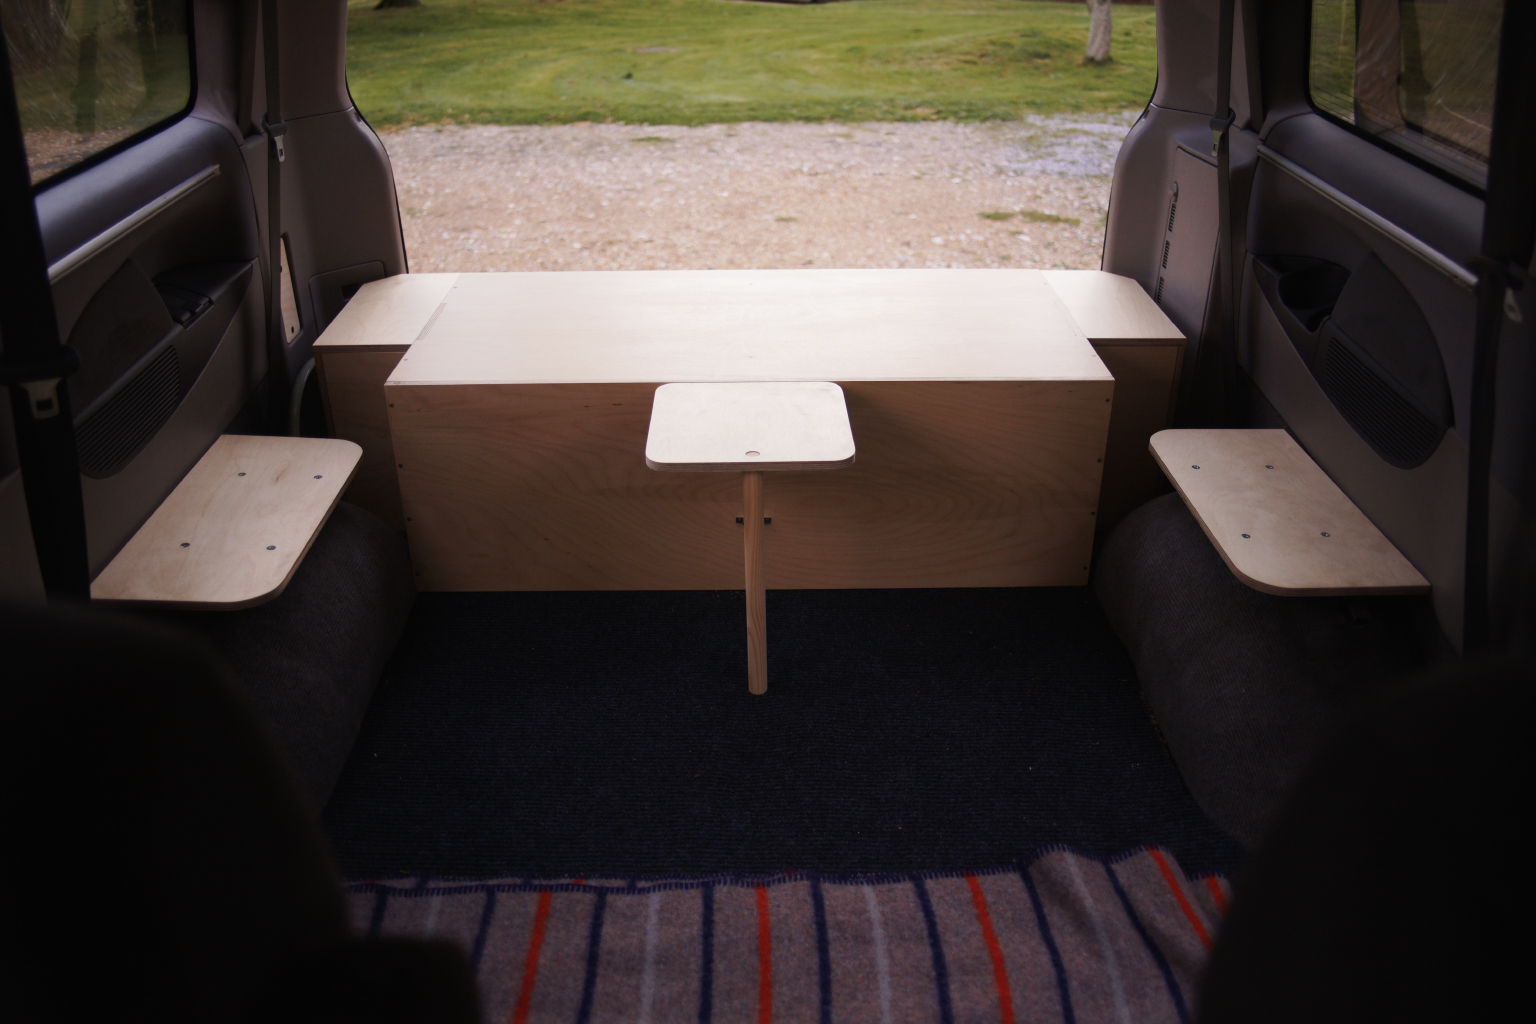 Inside the van, wheel arch mounted seats and the small folding table.